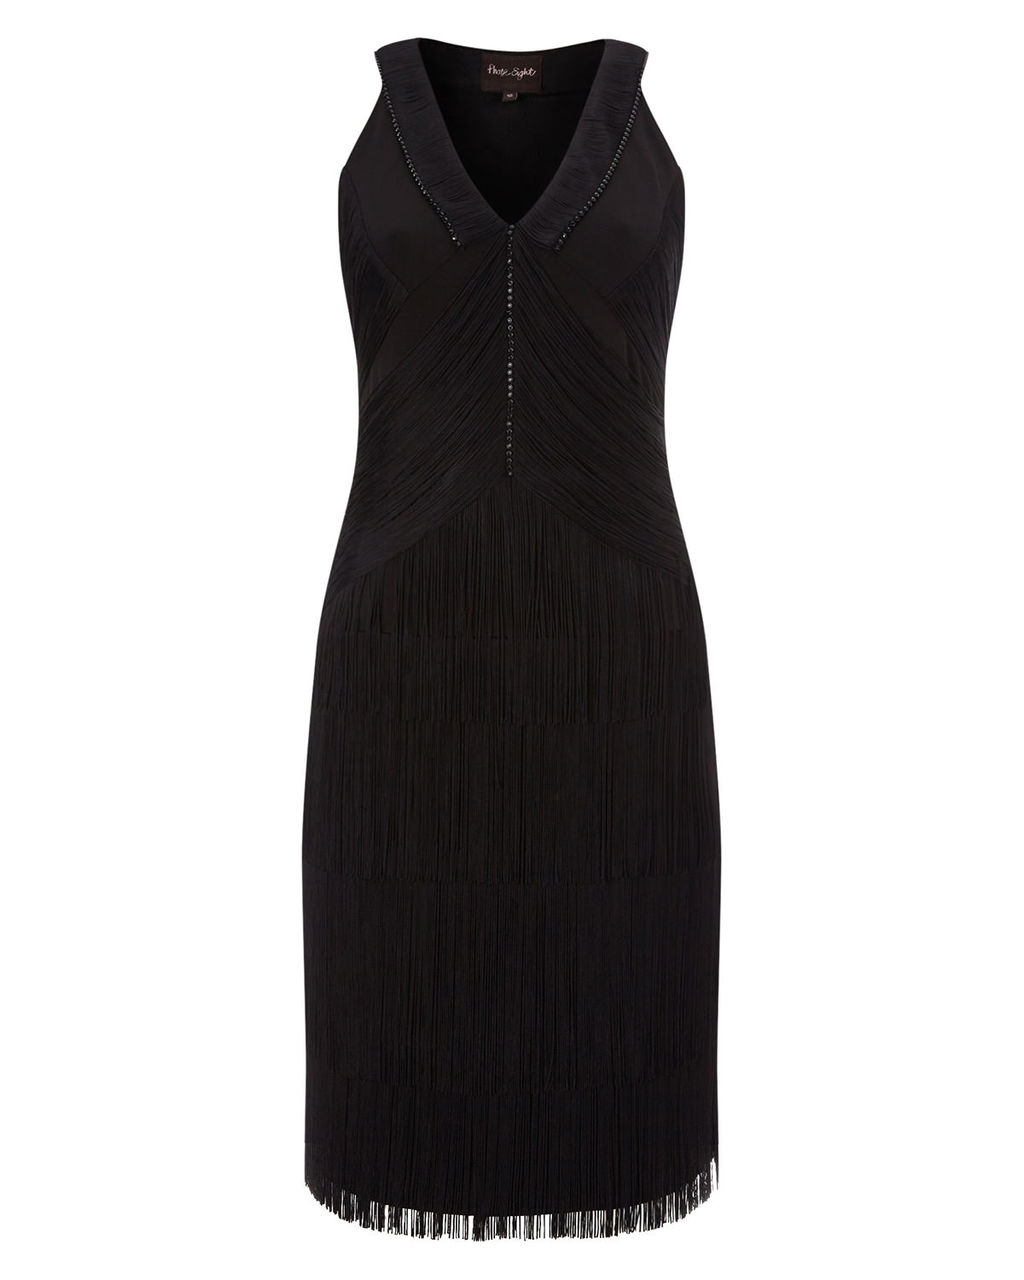 Ona Fringed Dress - style: shift; neckline: v-neck; pattern: plain; sleeve style: sleeveless; predominant colour: black; occasions: evening; length: on the knee; fit: body skimming; fibres: polyester/polyamide - 100%; sleeve length: sleeveless; pattern type: fabric; texture group: other - light to midweight; embellishment: fringing; season: a/w 2015; wardrobe: event; embellishment location: skirt